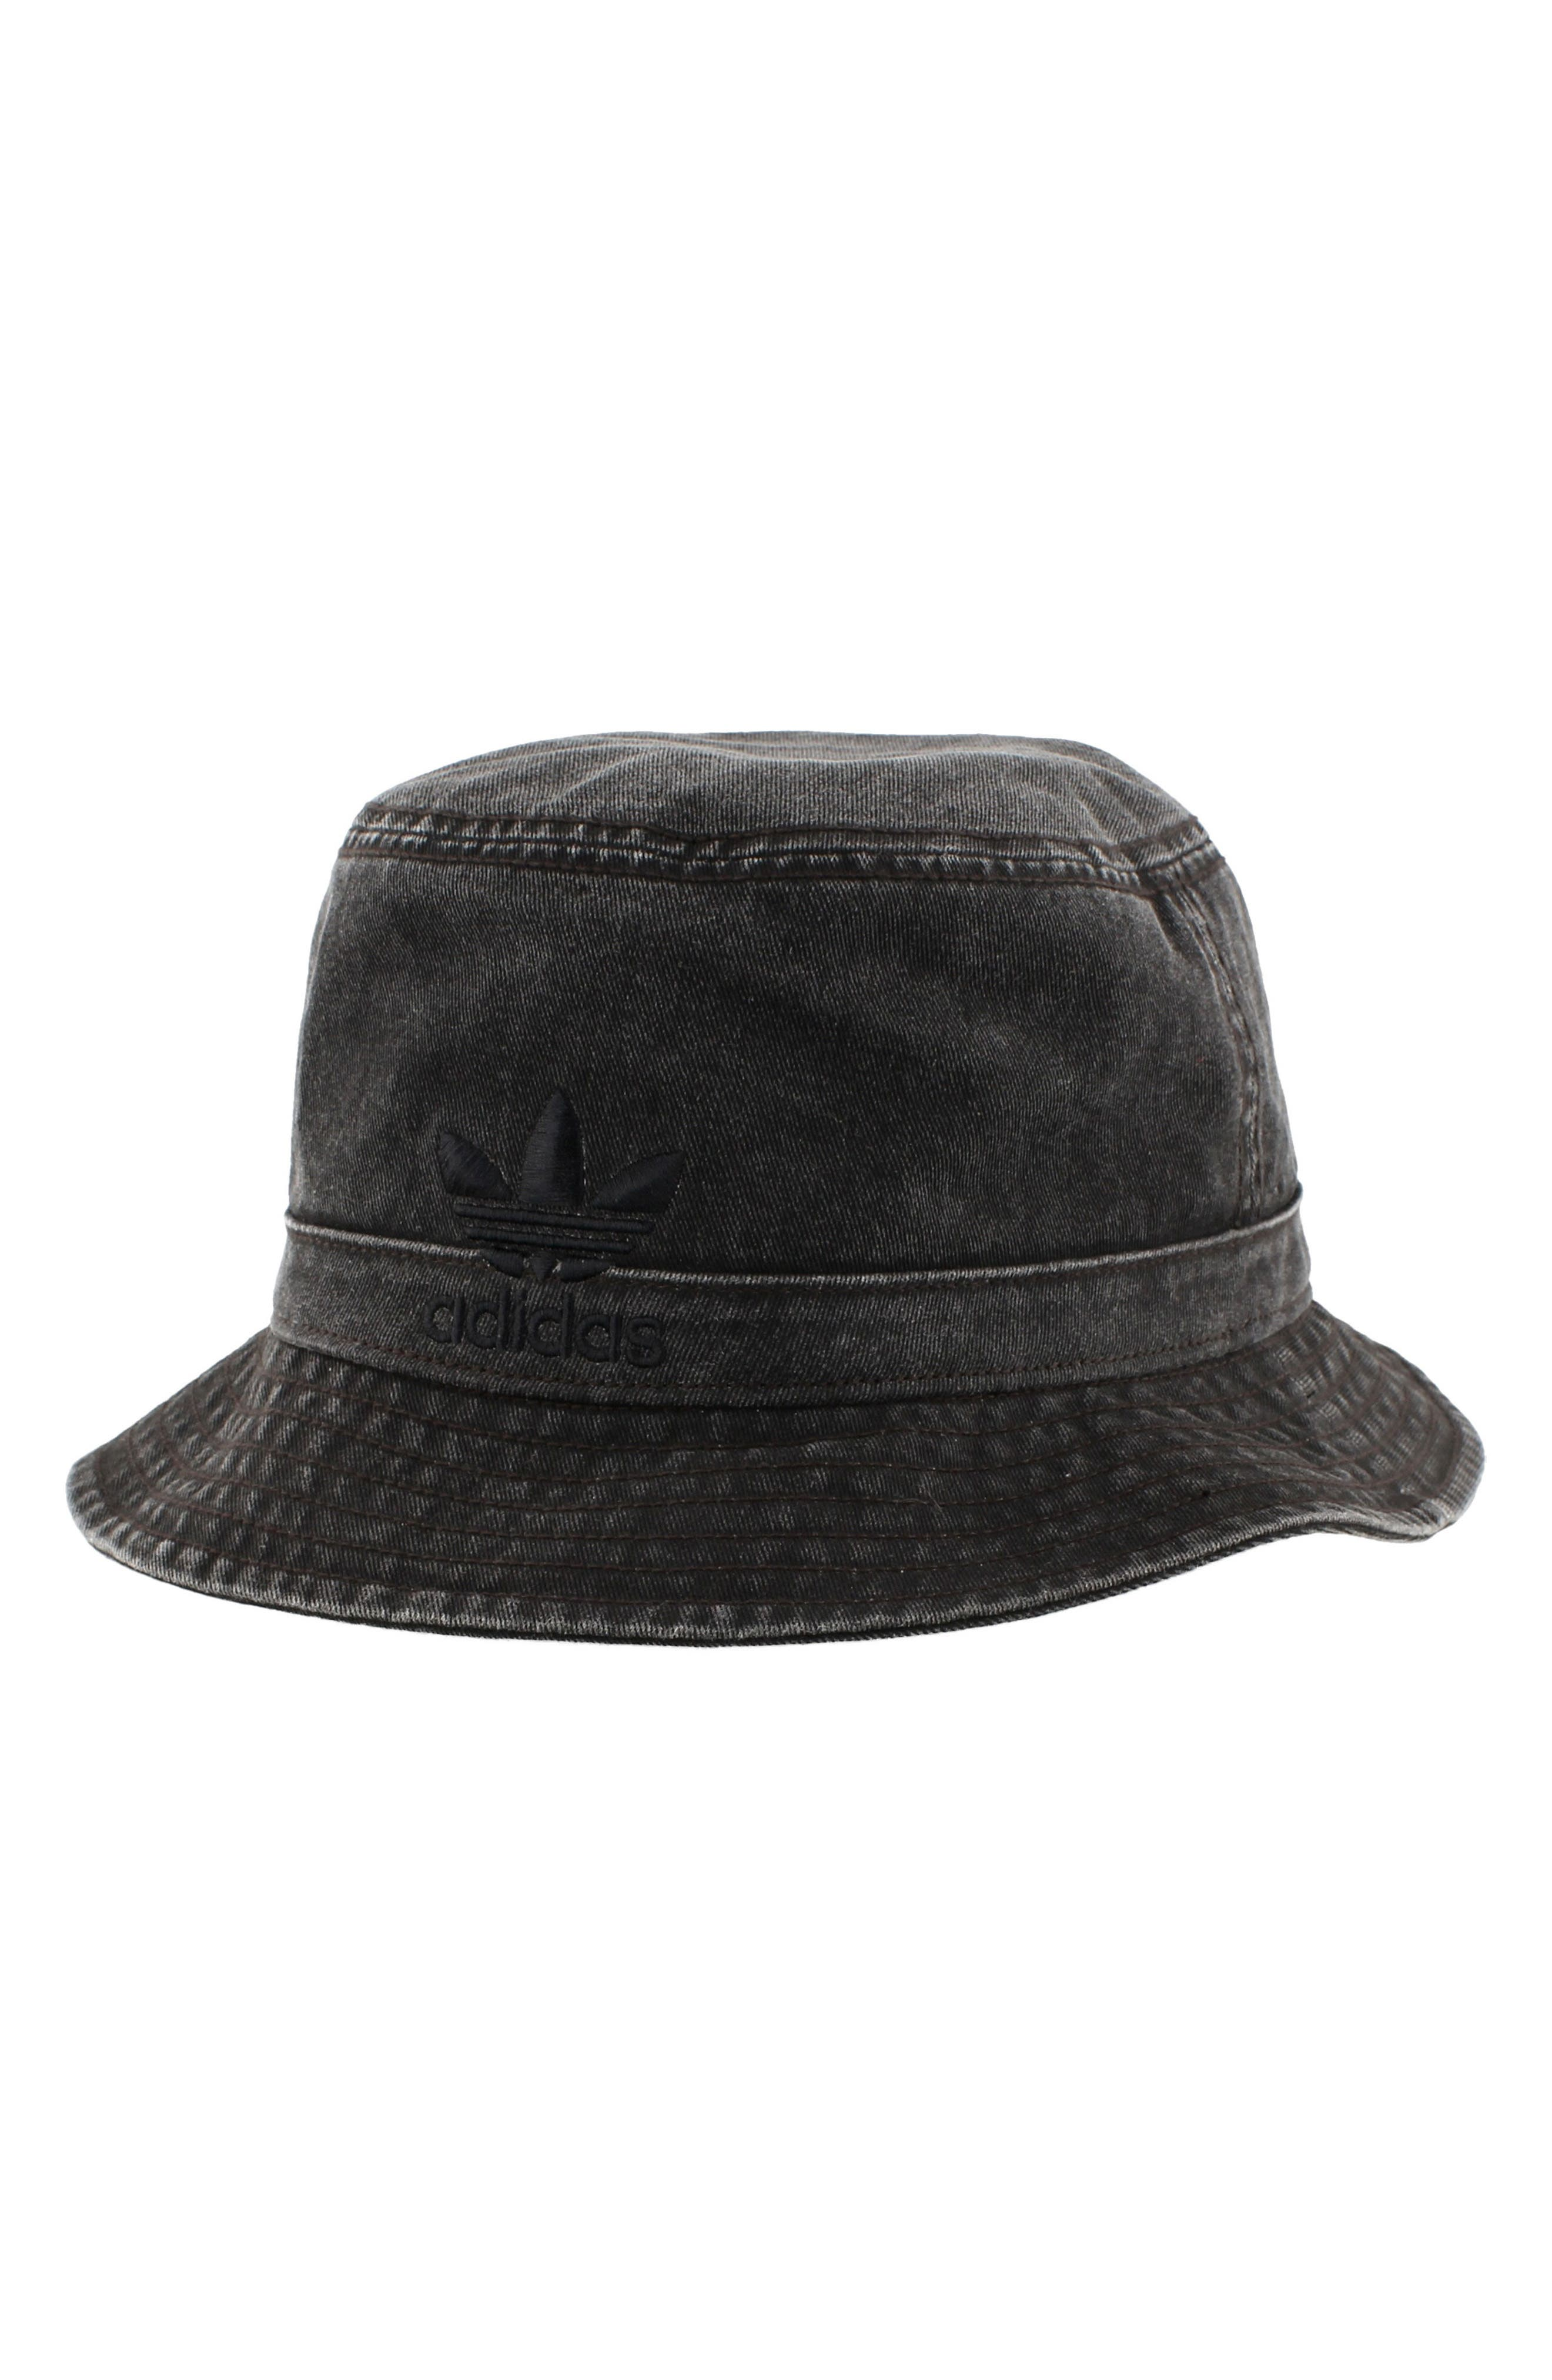 Washed Bucket Hat,                         Main,                         color, 001